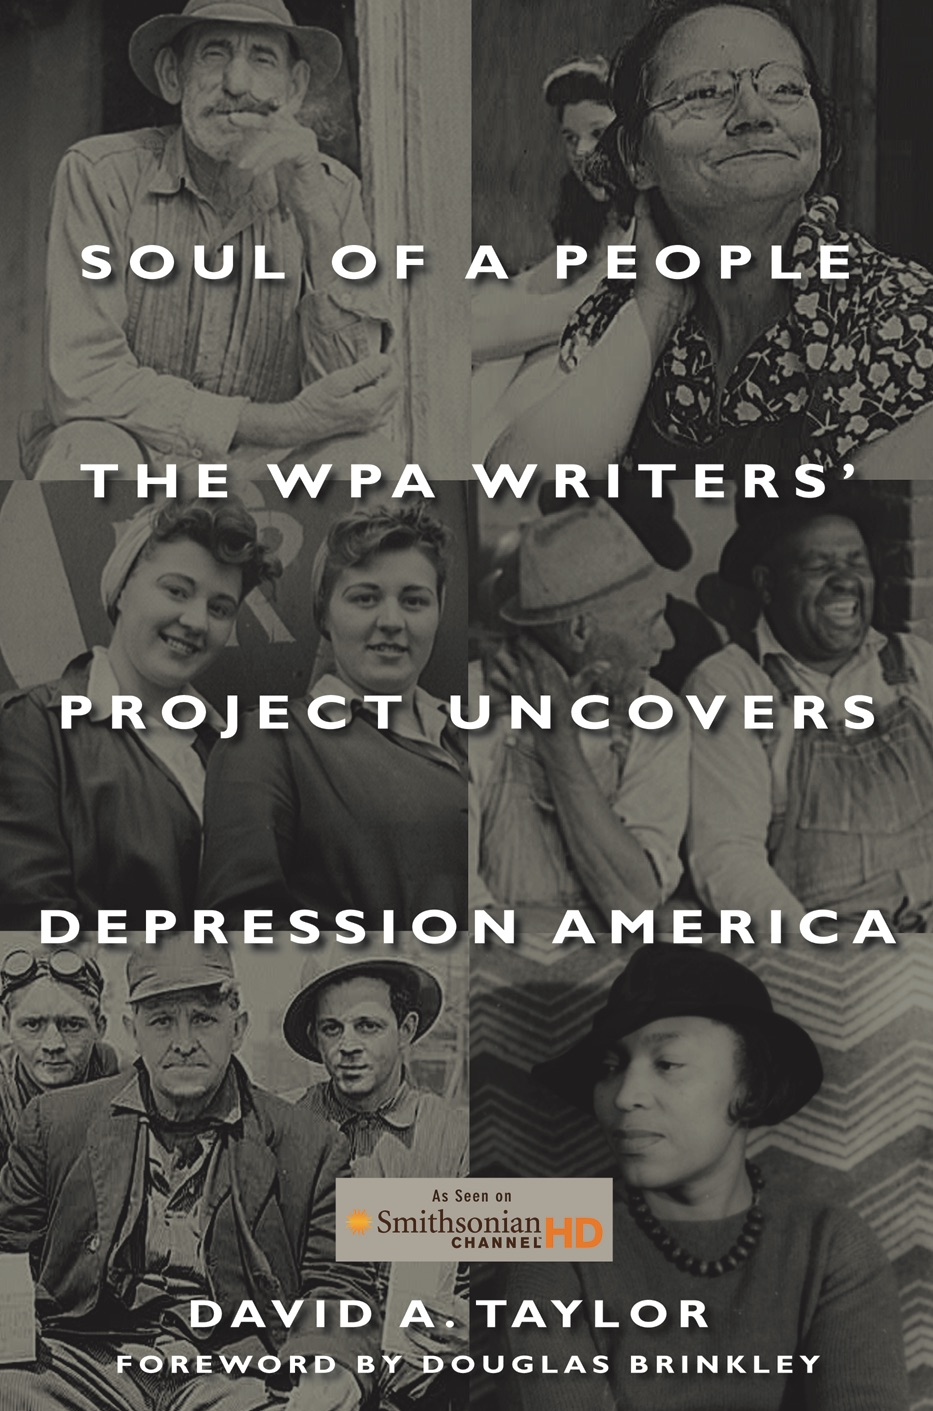 The WPA Writers Project by David A. Taylor